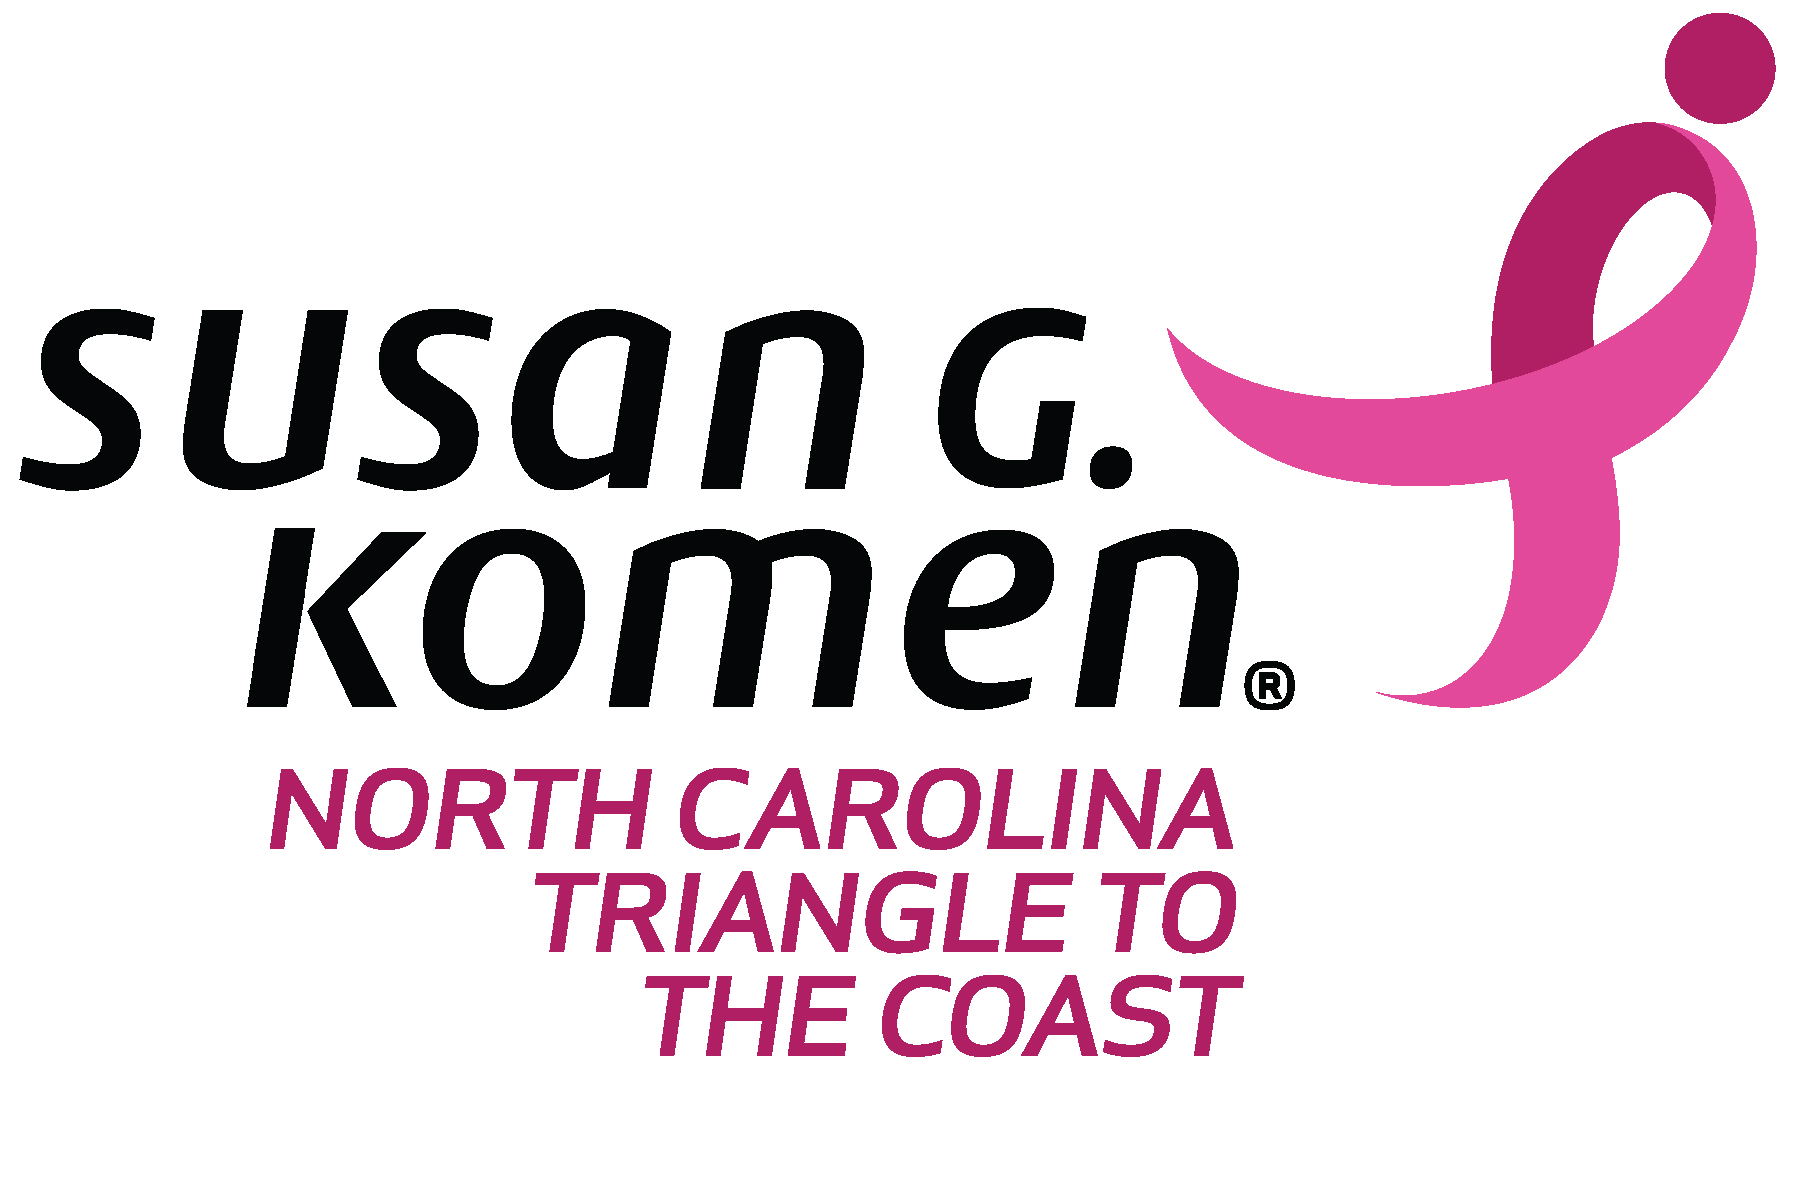 Susan G. Komen North Carolina Triangle to the Coast